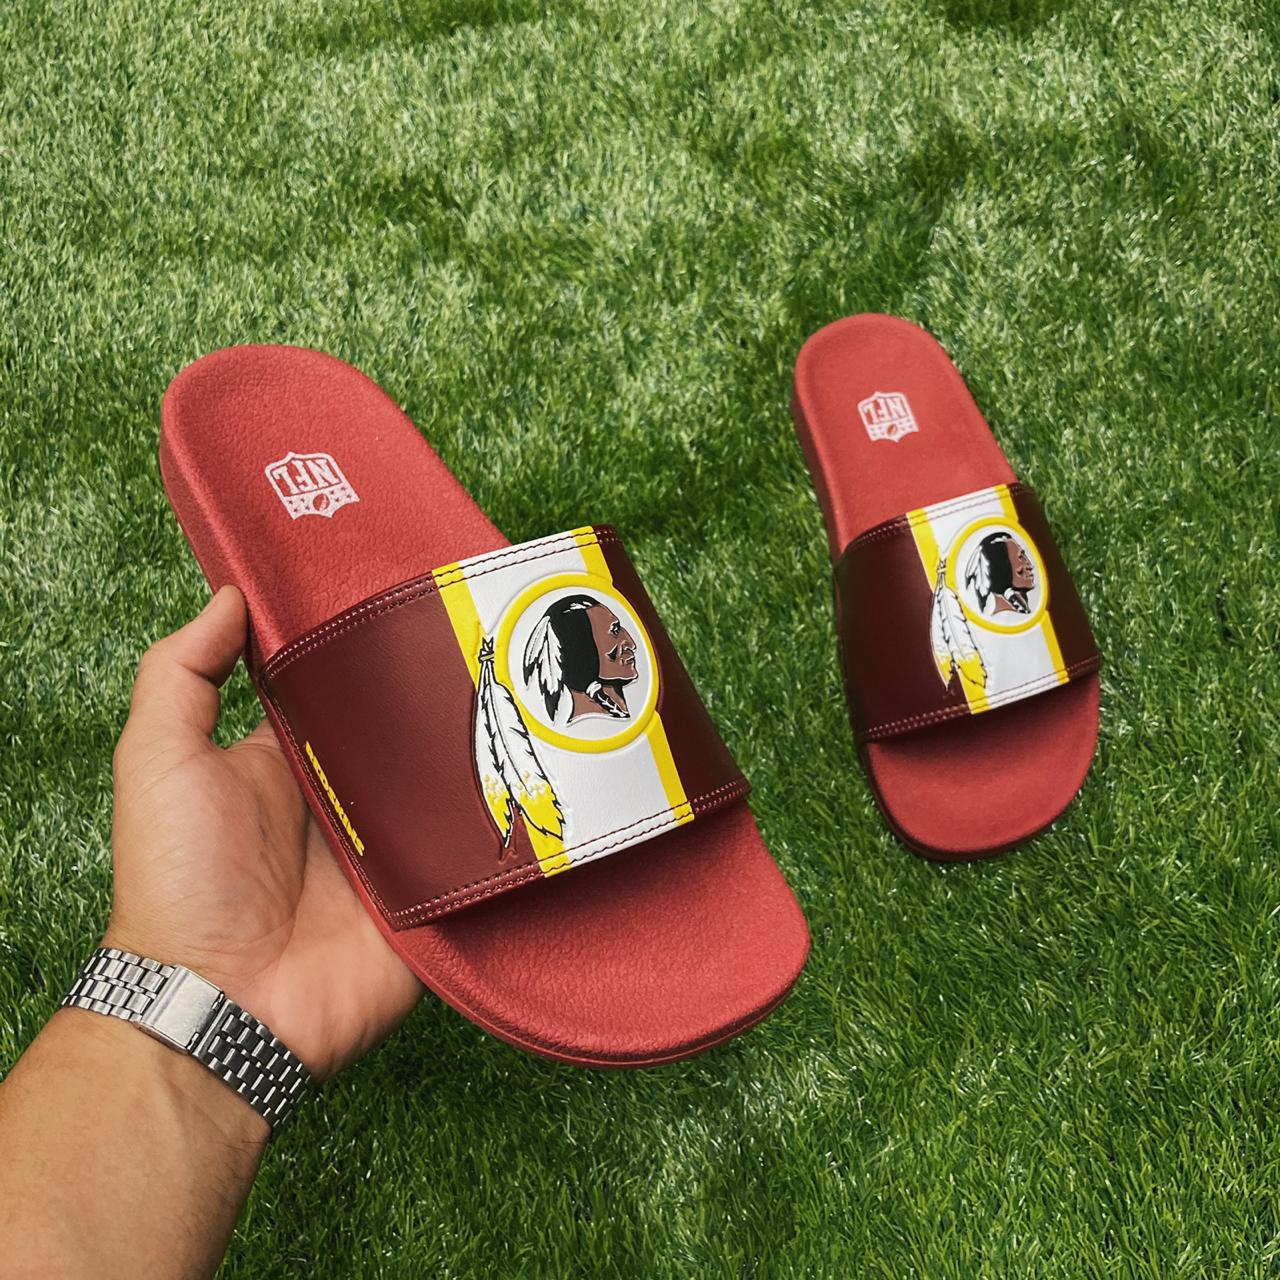 Chinelo nfl  redskins brown/white nfsl0019